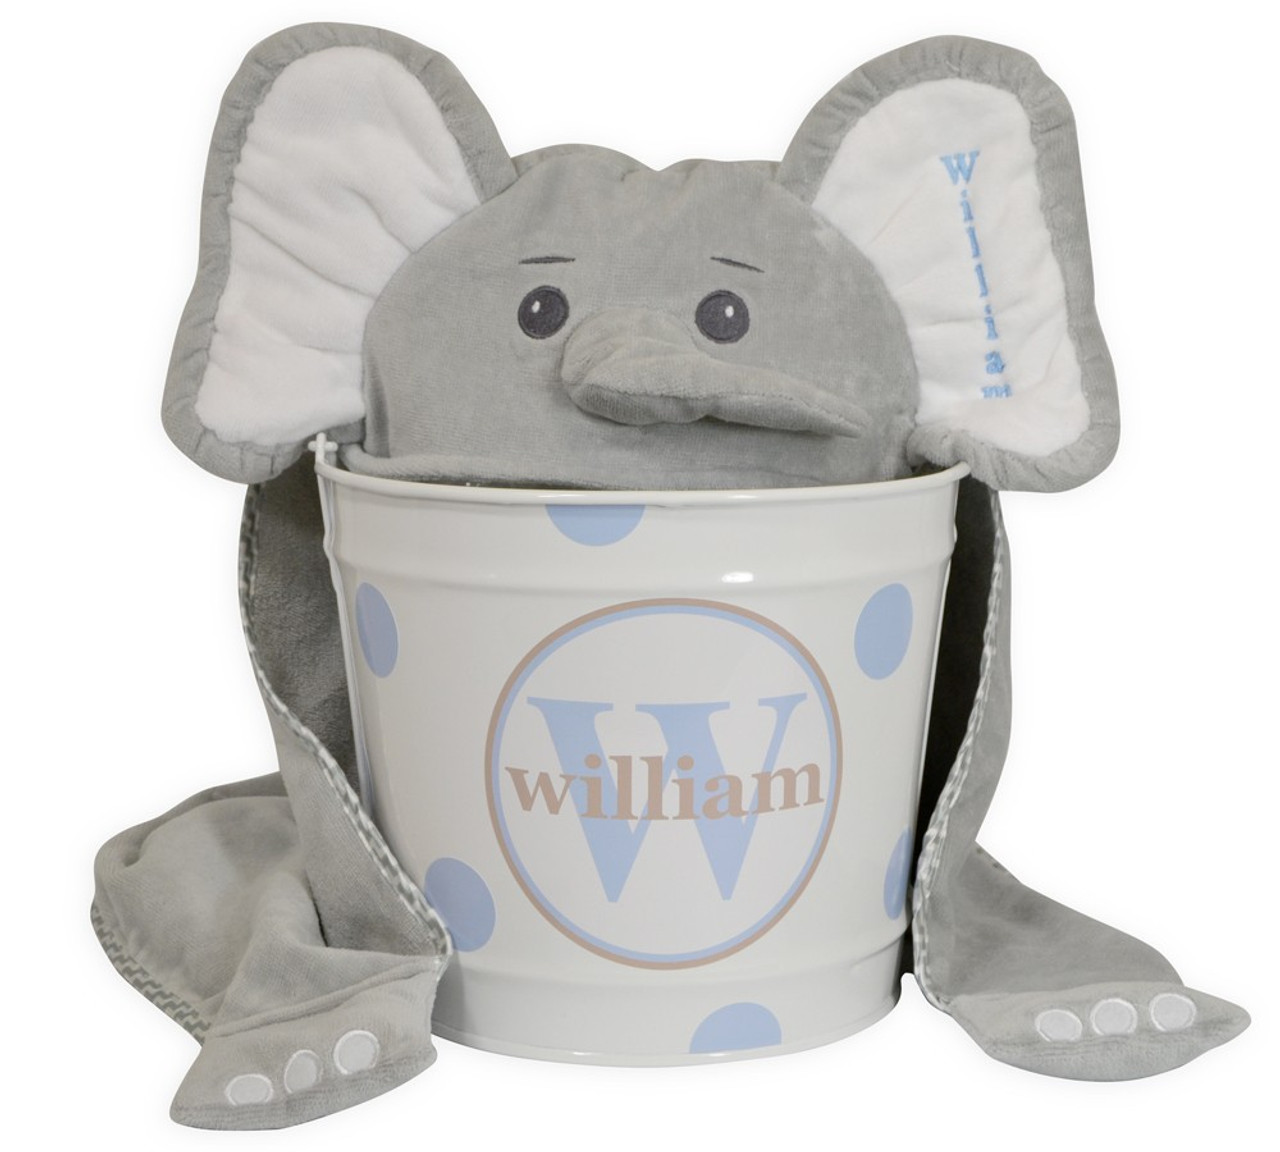 Personalized Elephant Towel And Bucket Gift Set For Baby